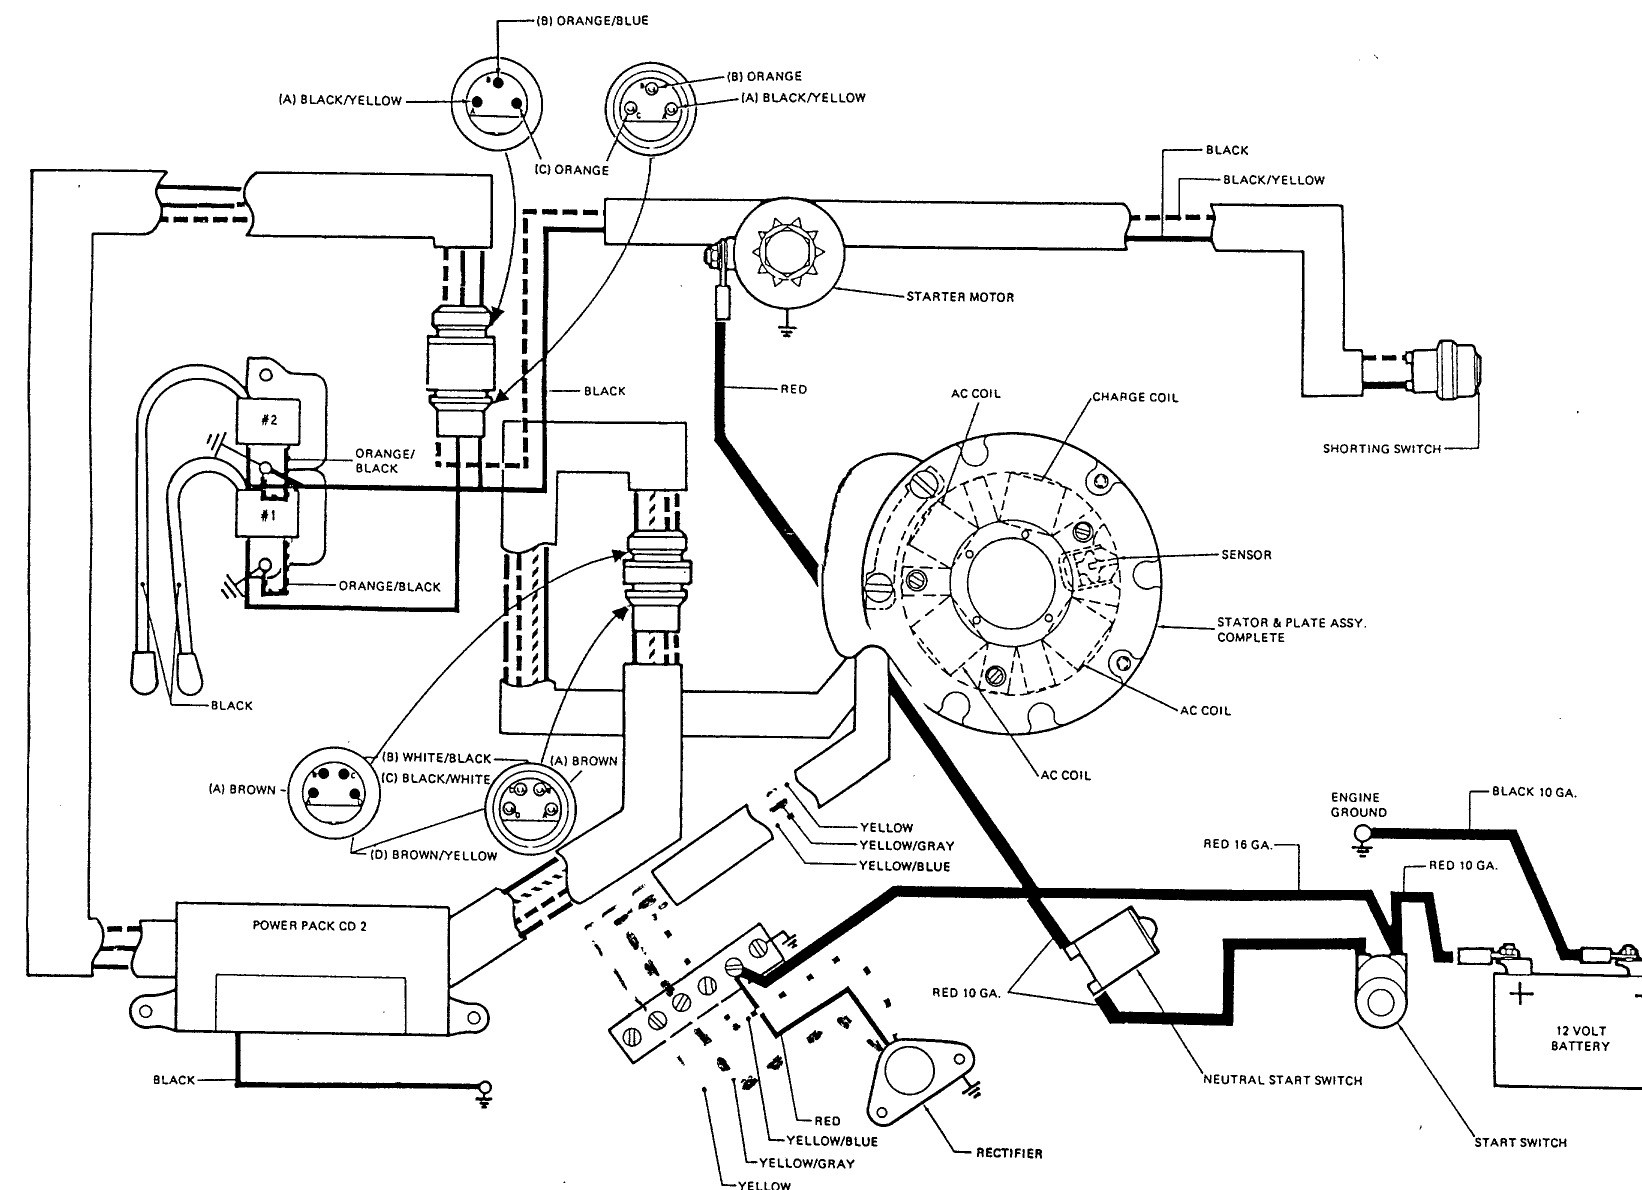 Gas Turbine Engine Diagram How Does A Gas Turbine Engine